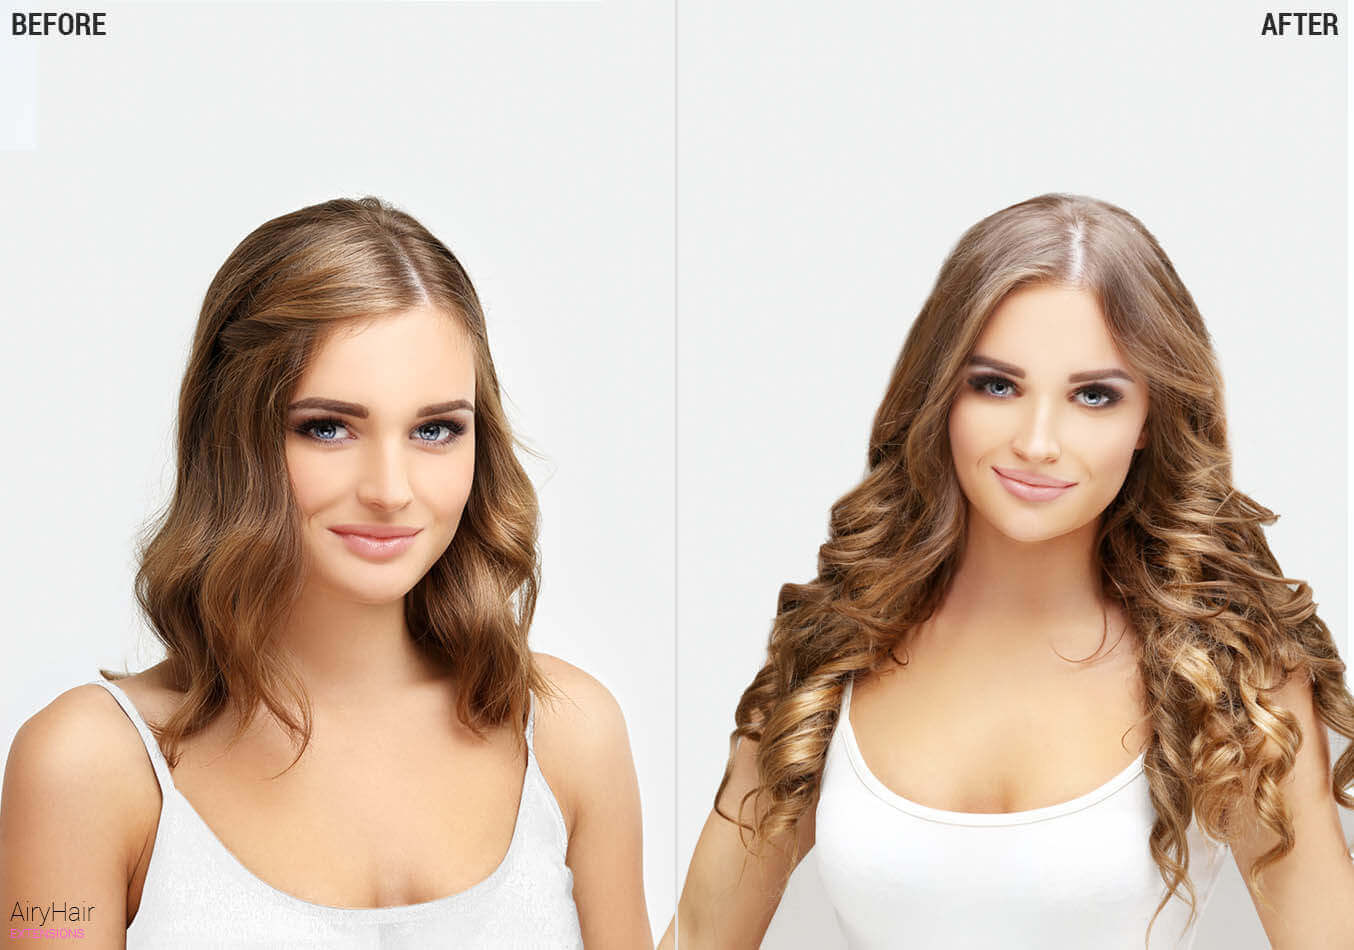 AiryHair clip on extensions, before and after